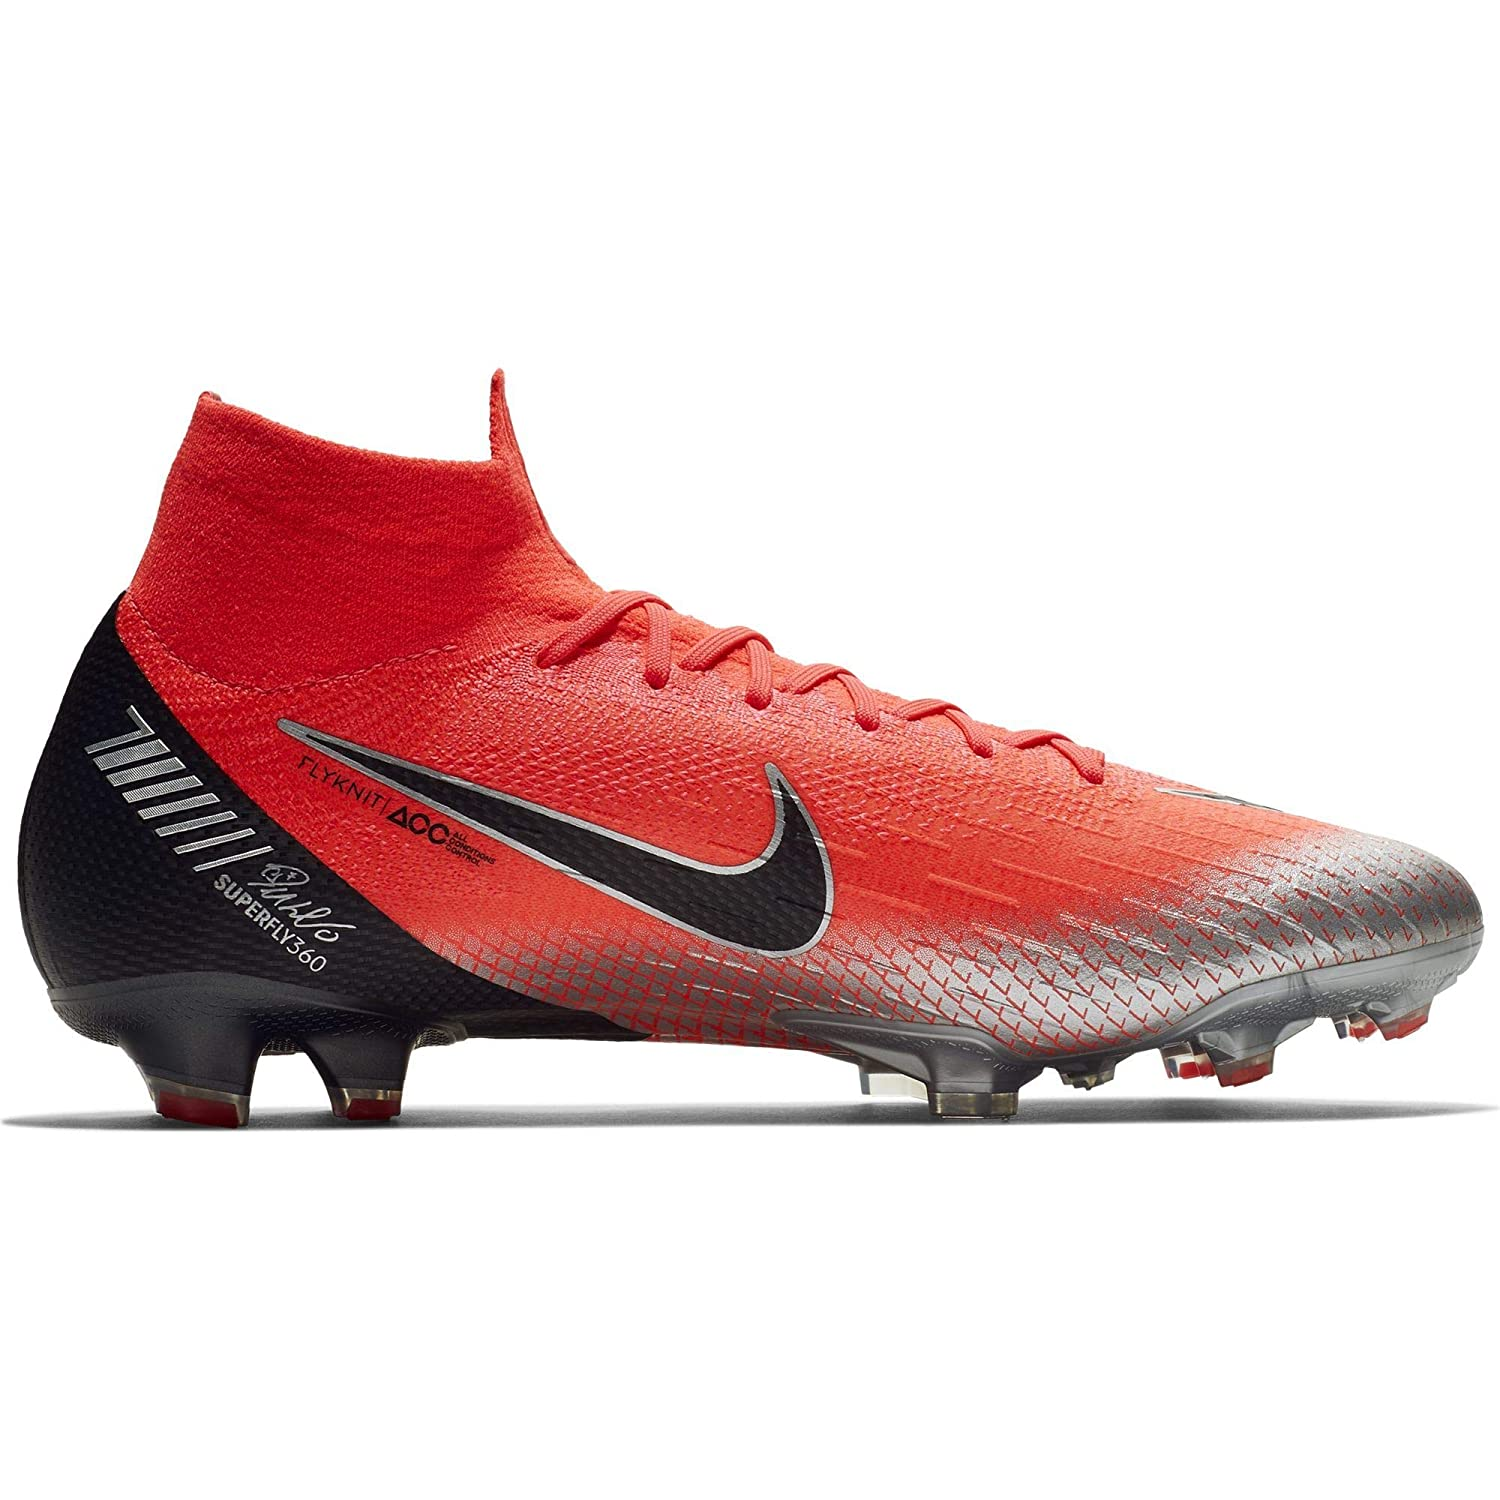 pretty nice d3fe3 66d12 Nike Men's Mercurial Superfly 360 Elite CR7 FG-Flash Crimson/Total  Crimson/Black